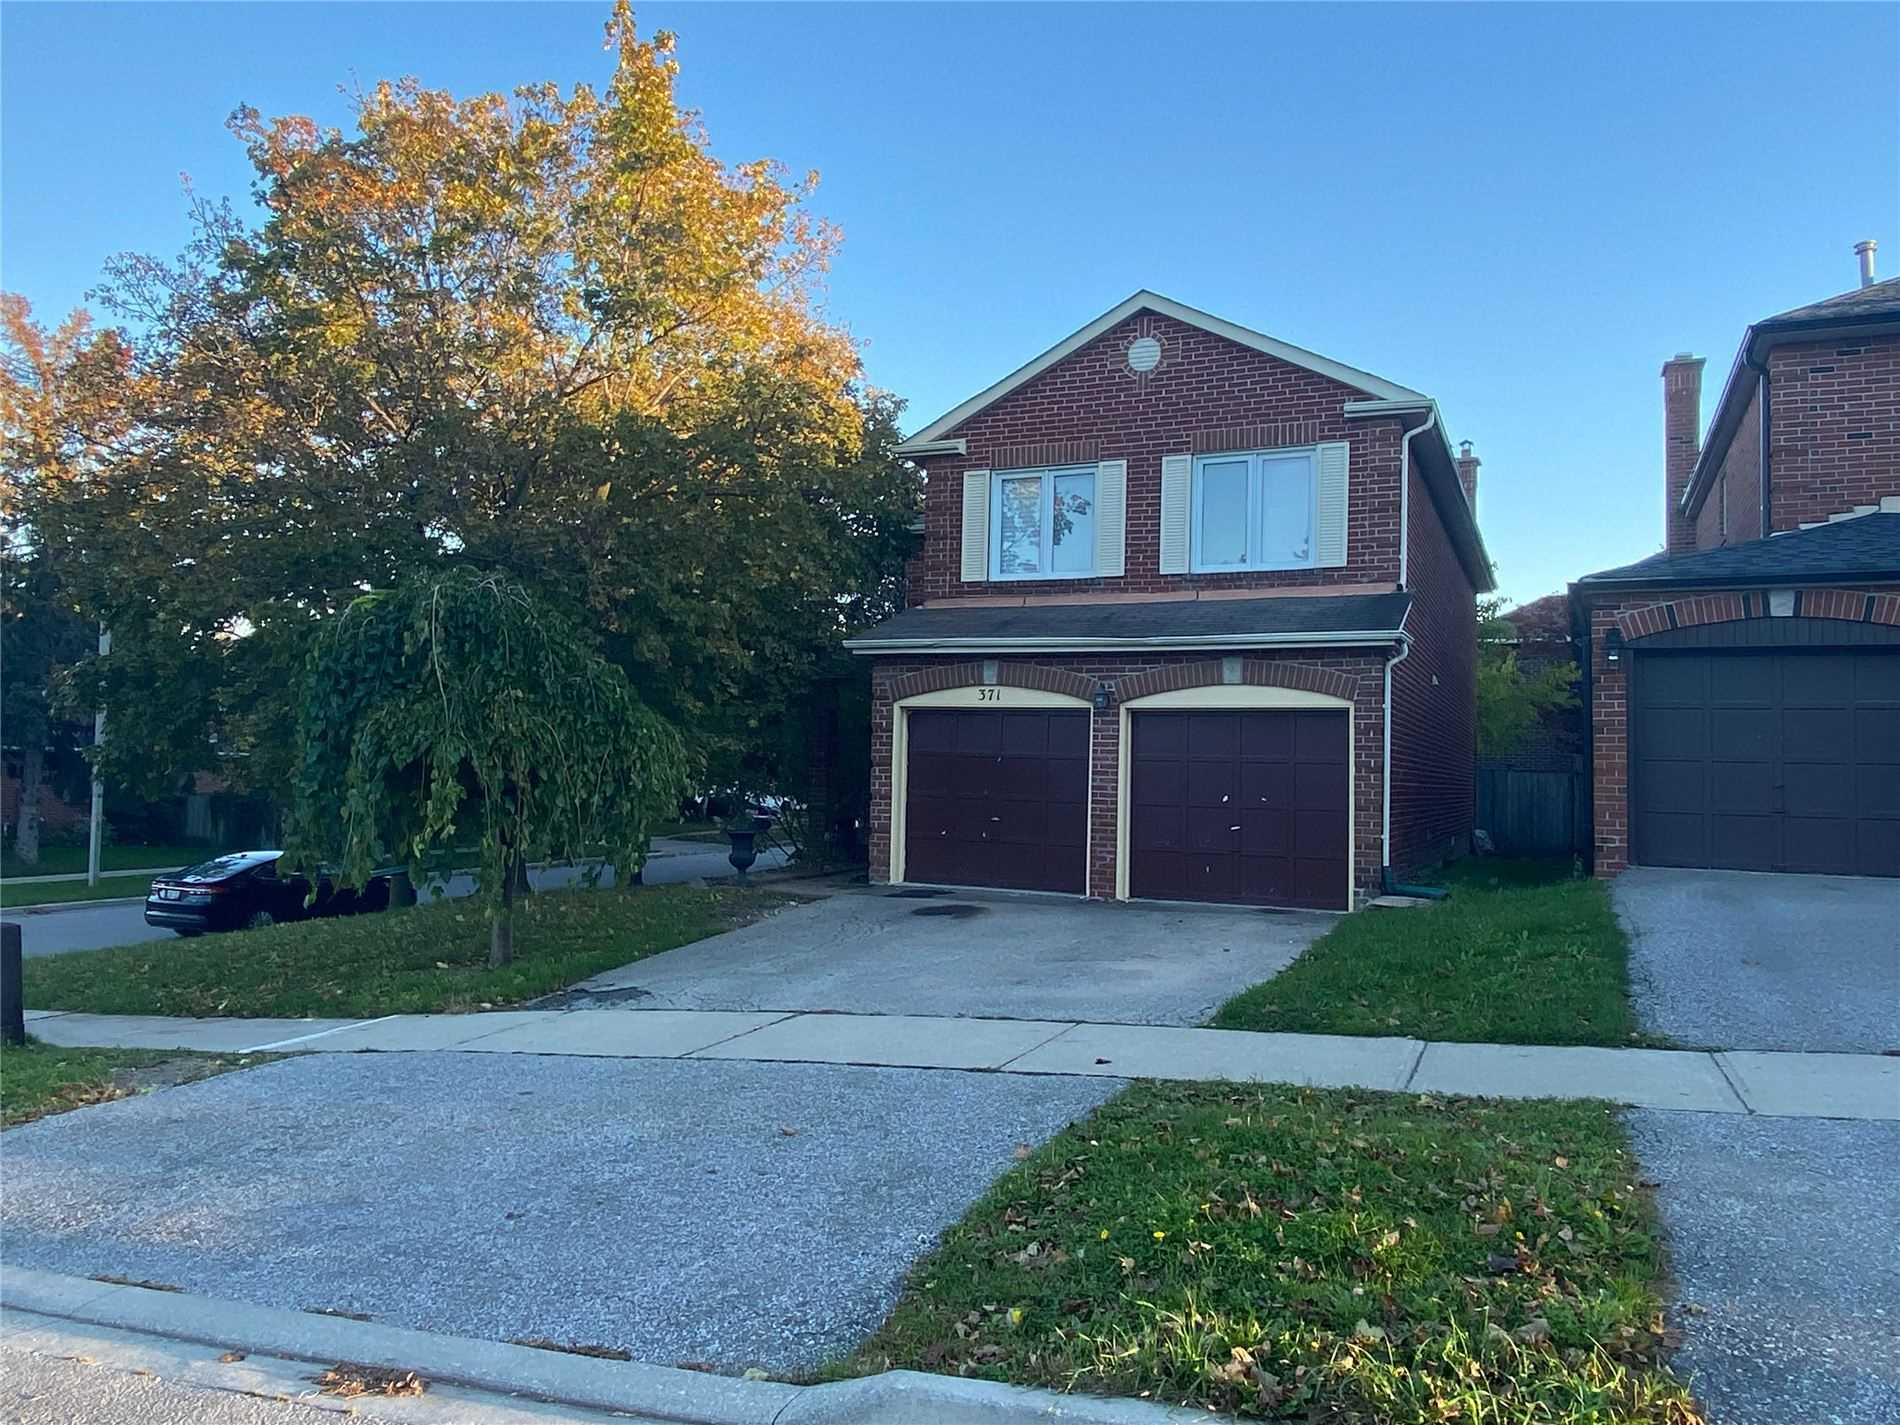 Detached house For Lease In Vaughan - 371 Spring Gate Blvd, Vaughan, Ontario, Canada L4J3C3 , 4 Bedrooms Bedrooms, ,4 BathroomsBathrooms,Detached,For Lease,Spring Gate